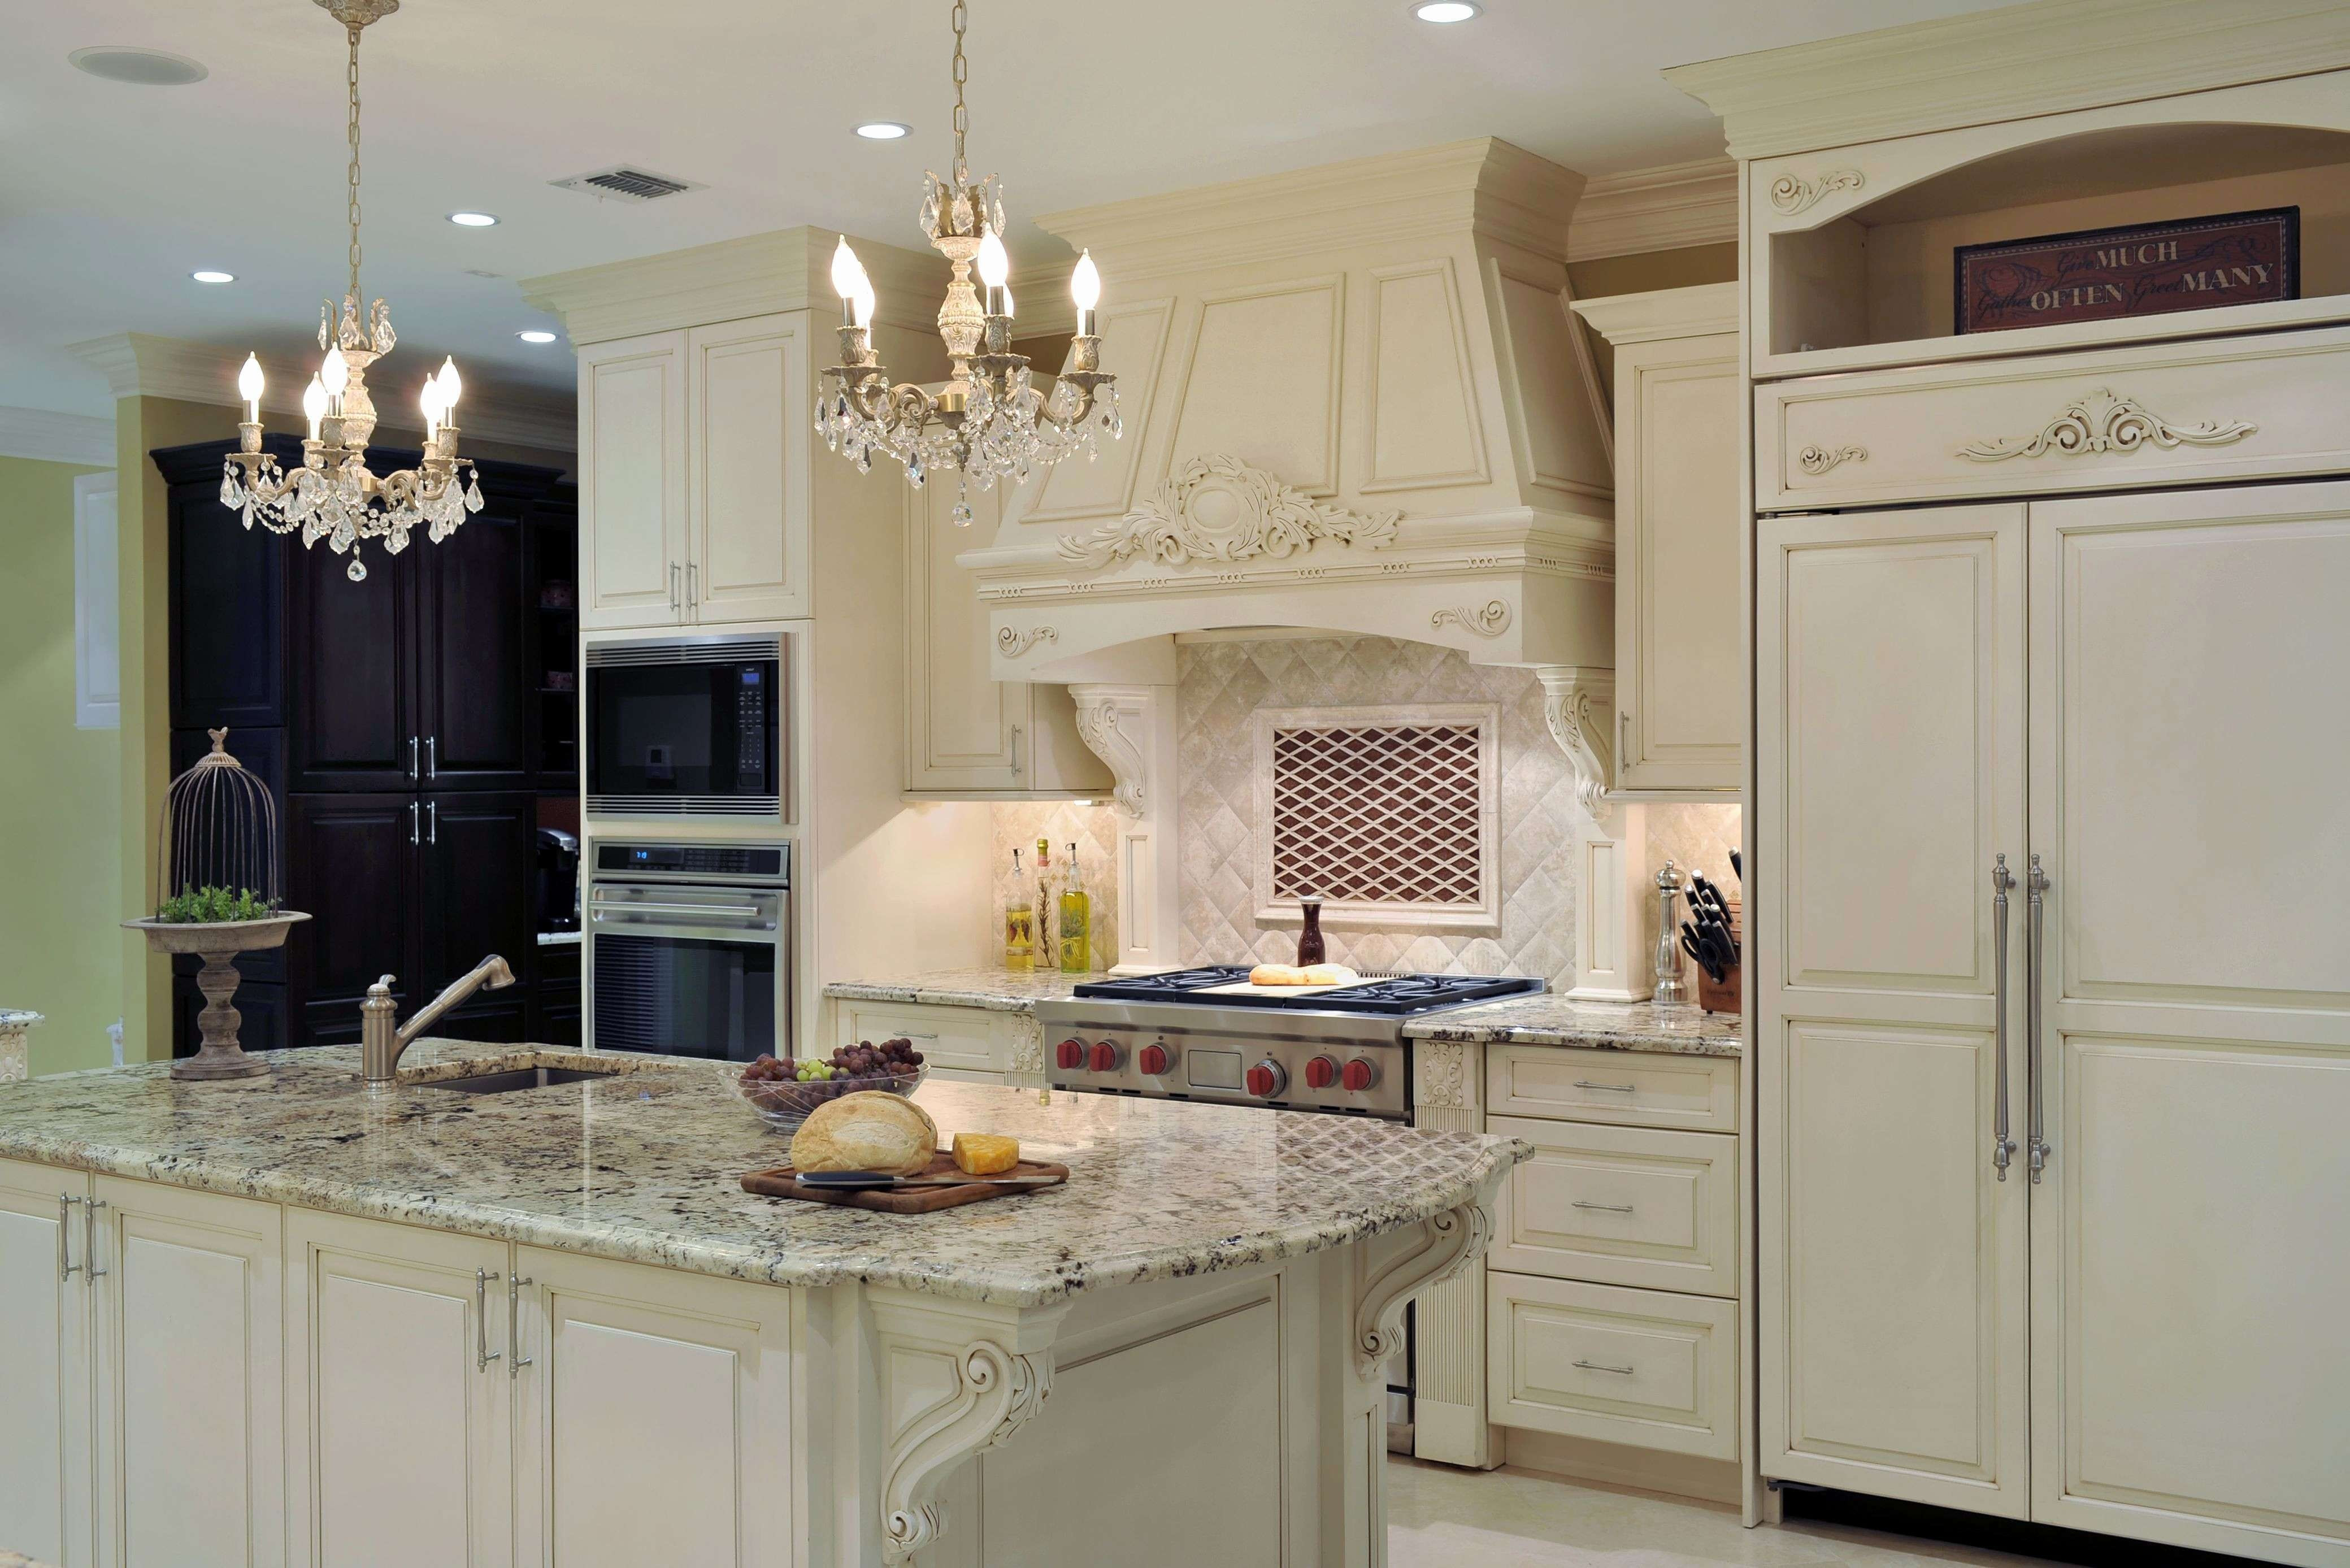 kitchens with hardwood floors and white cabinets of all wood kitchen cabinets best of white wood floors best kitchens with regard to all wood kitchen cabinets luxury how much is kitchen cabinet installation lovely kitchen cabinet 0d of